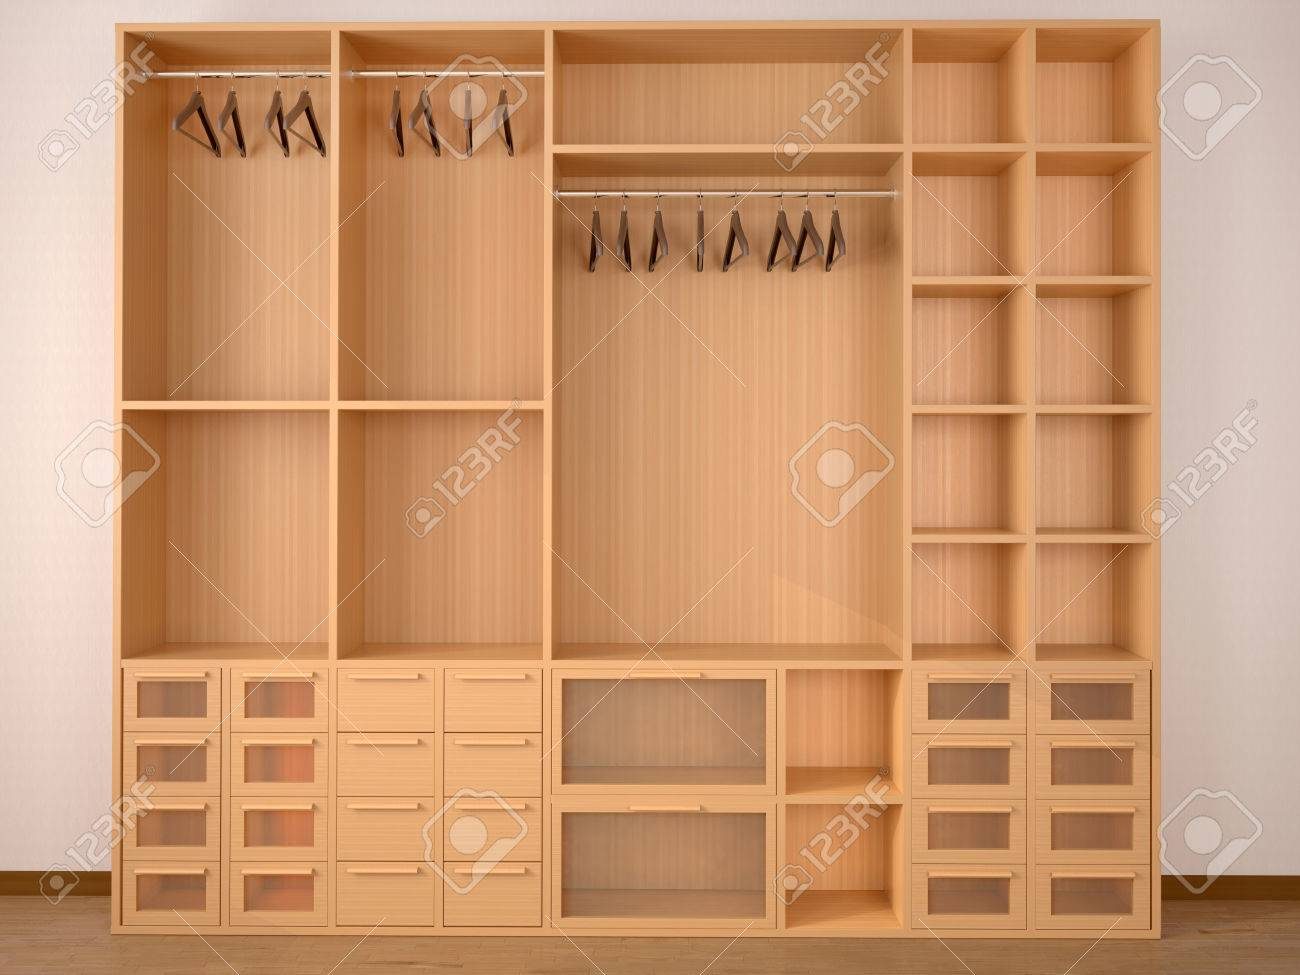 Empty Wooden Wardrobe Closet 3d Illustration Stock Photo Picture